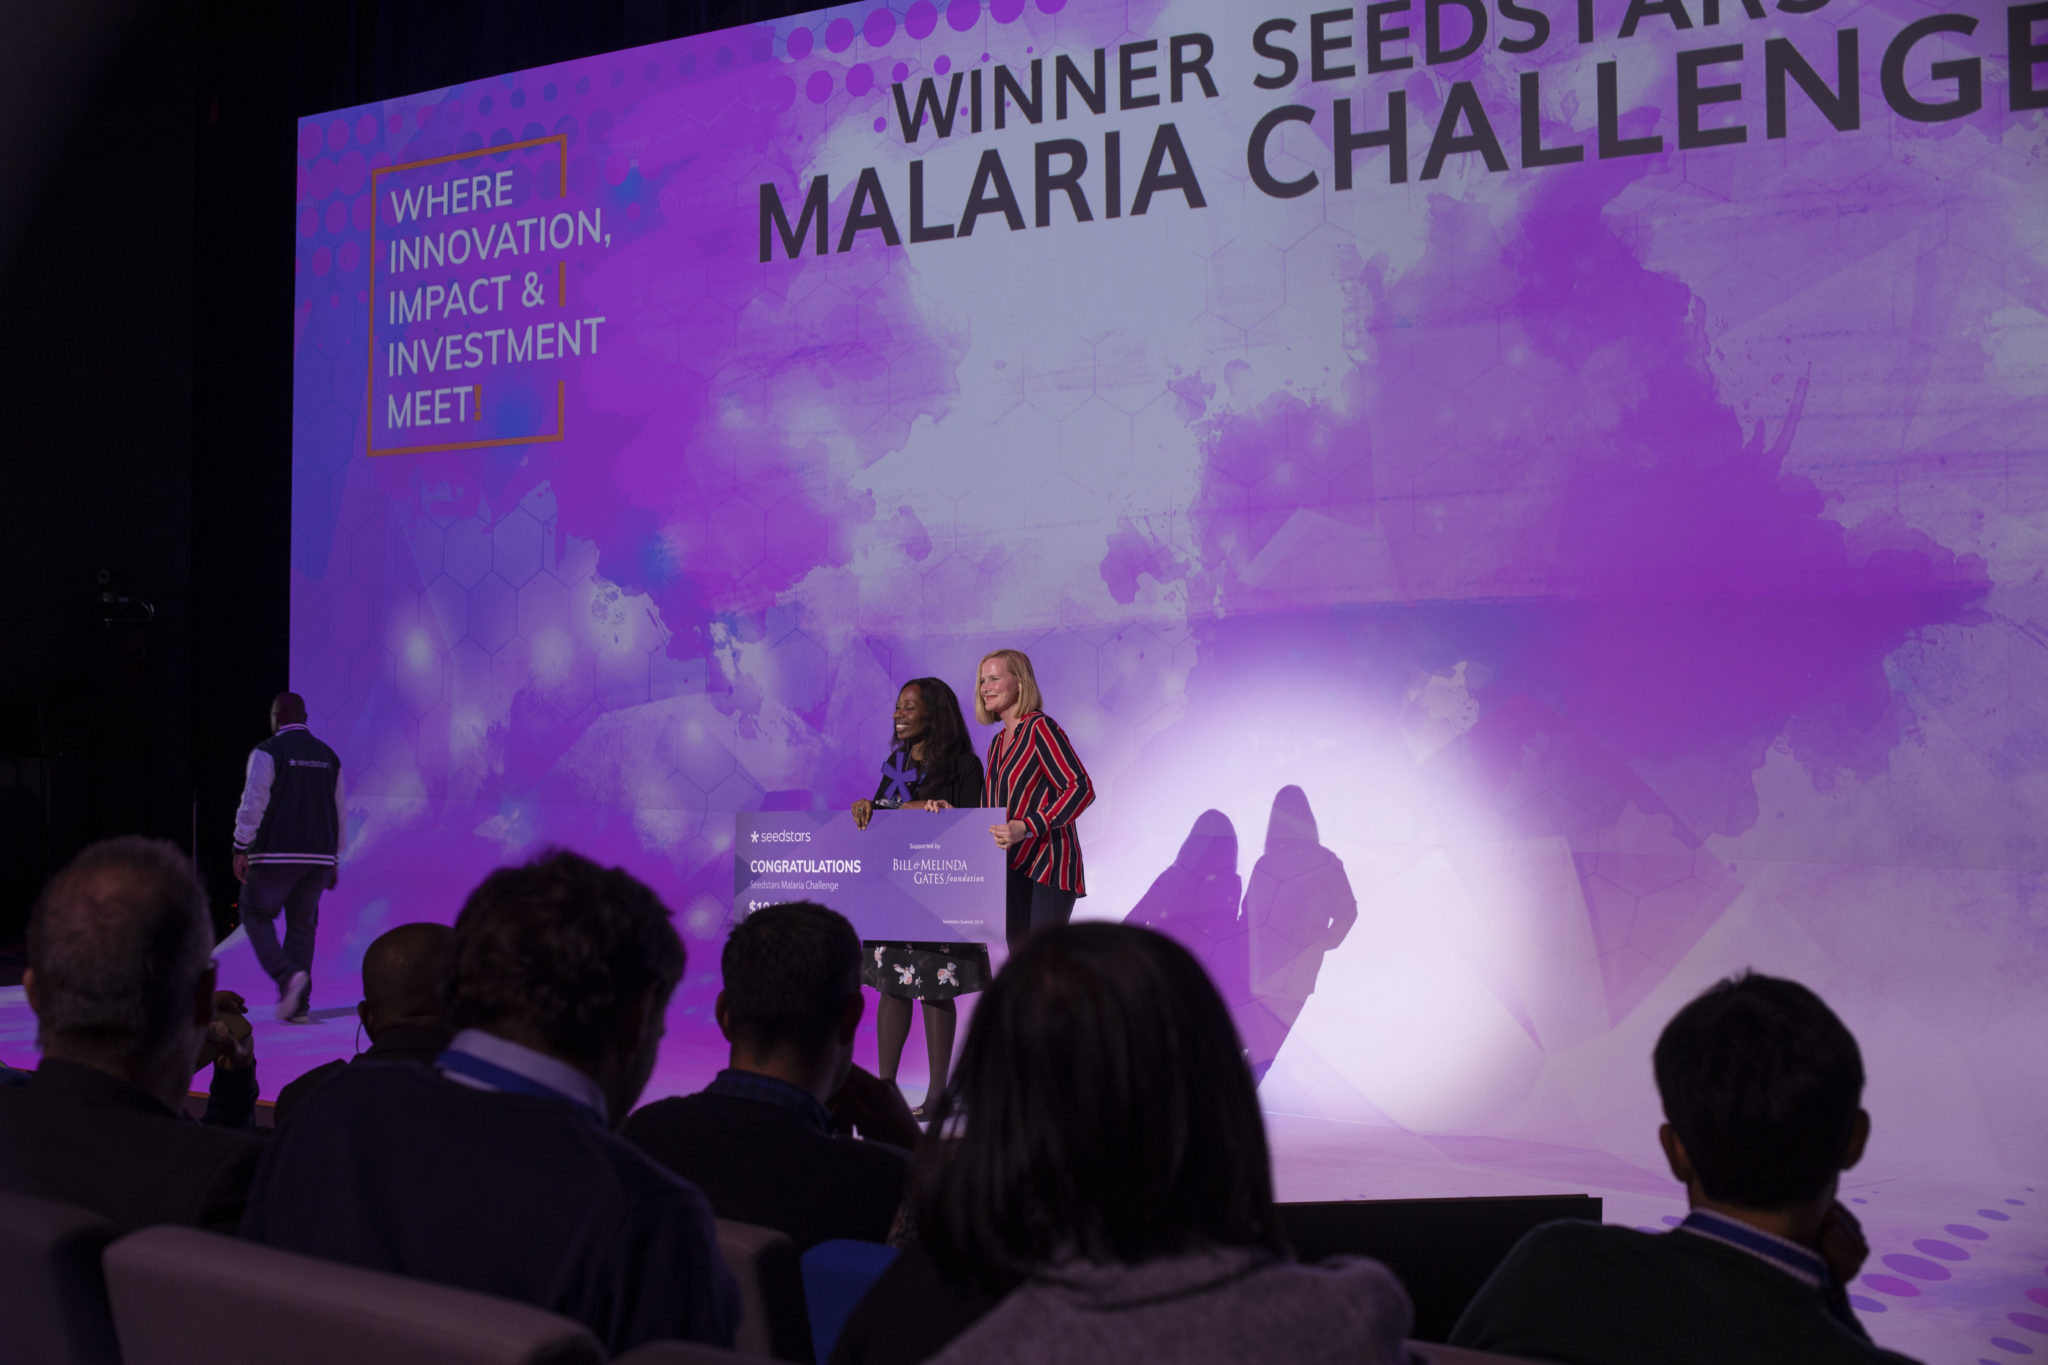 Medsaf, the winner of the Seedstars Malaria Challenge by Bill and Melinda Gates Foundation